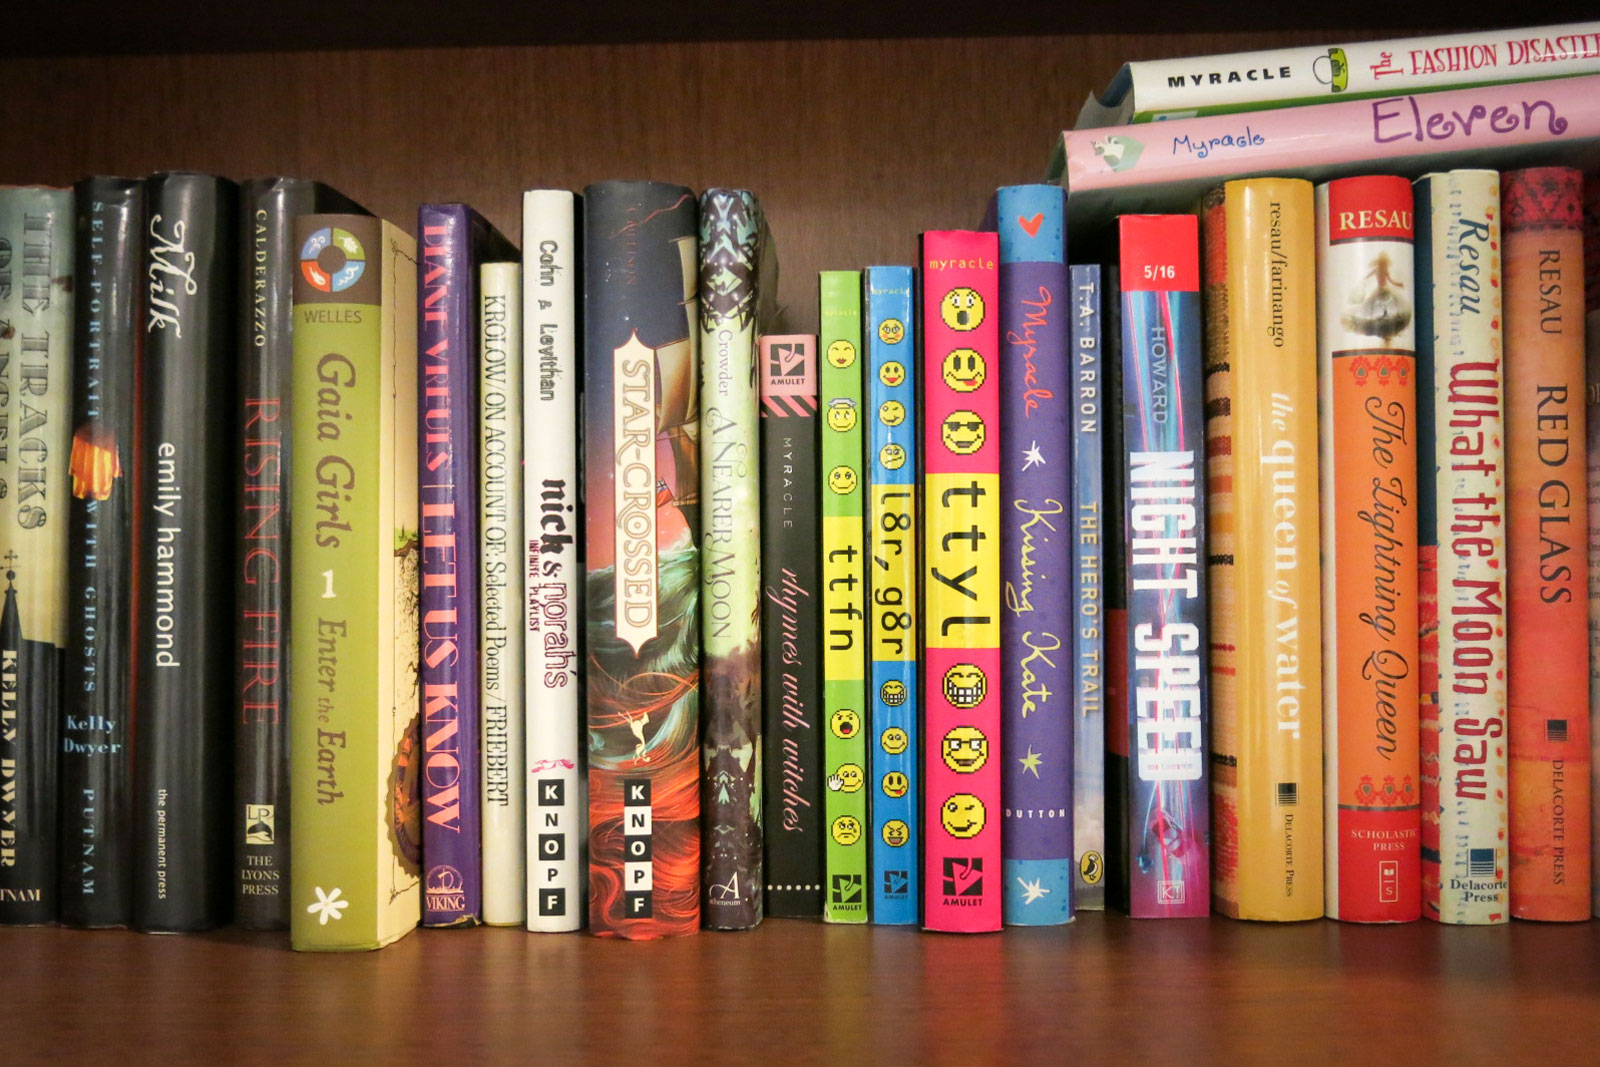 Photo: Enviro Lit Fiction 2 | Todd Mitchell's Bookshelf - GHood